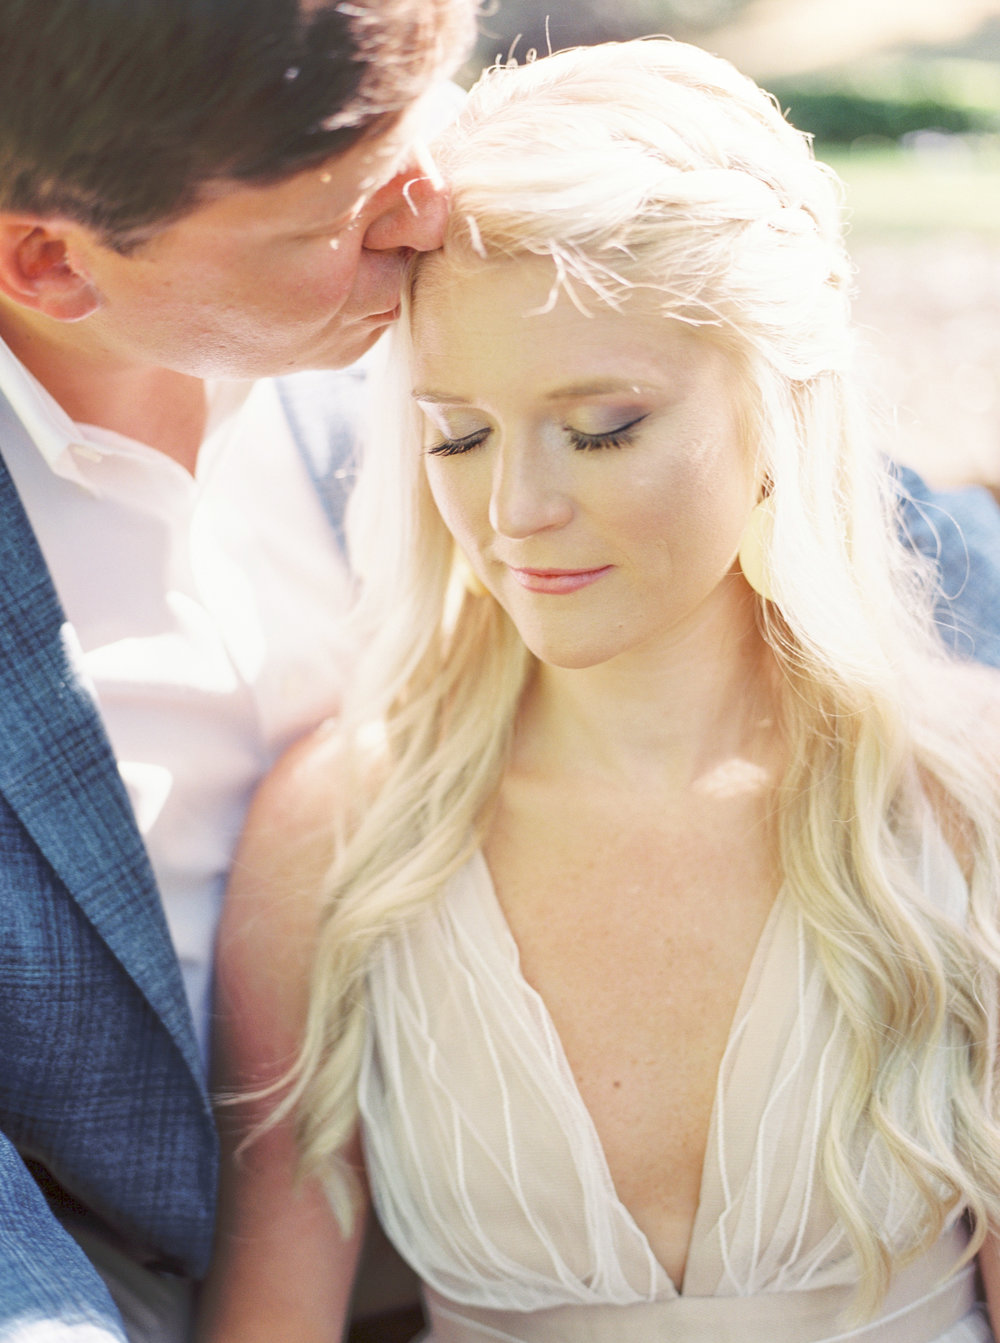 Erin_Johnny_Engagement_Dunaway_Gardens_Georgia_Film_Fallen_Photography-18.JPG